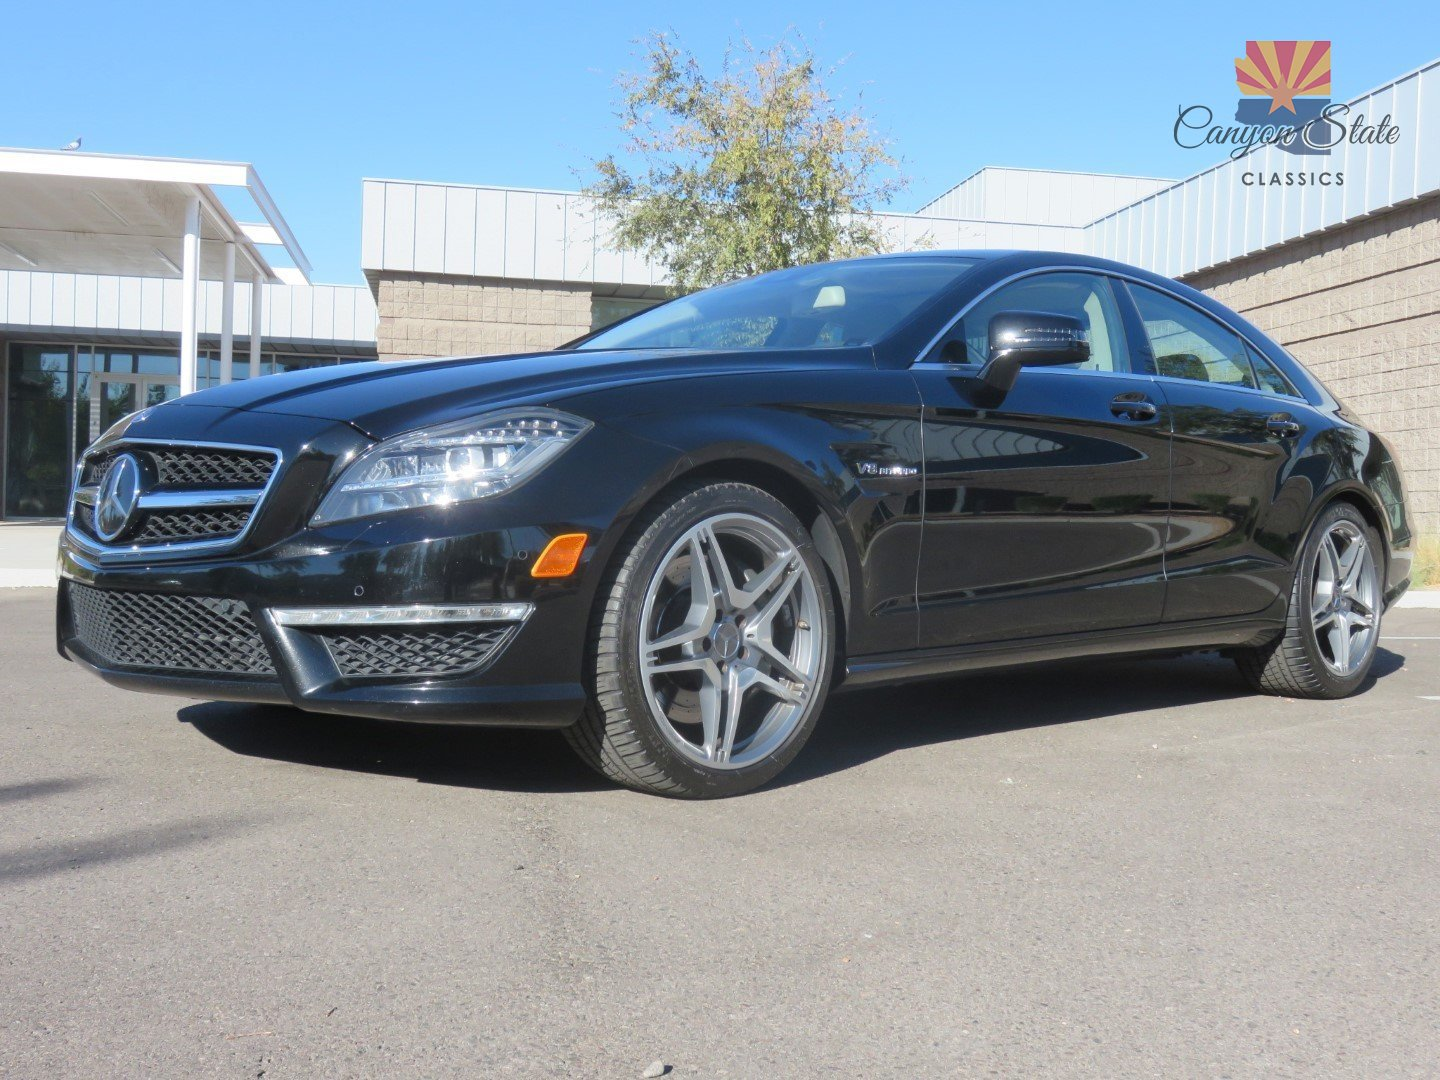 2012 Mercedes-Benz CLS63 AMG   Canyon State Classics